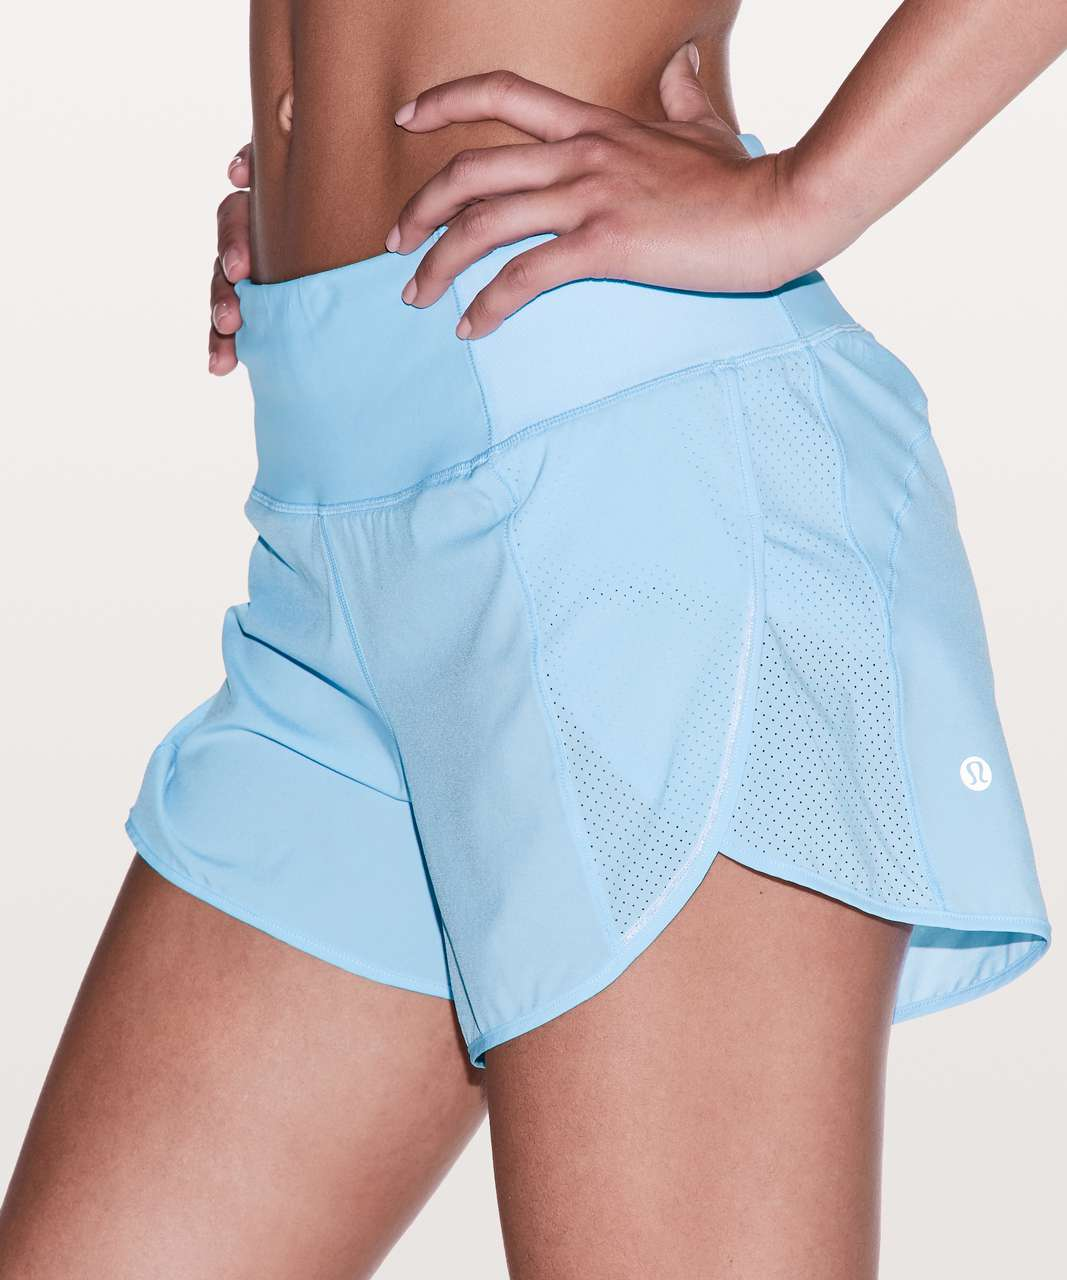 """Lululemon Real Quick Short *Perforated 3.5"""" - Breezy"""